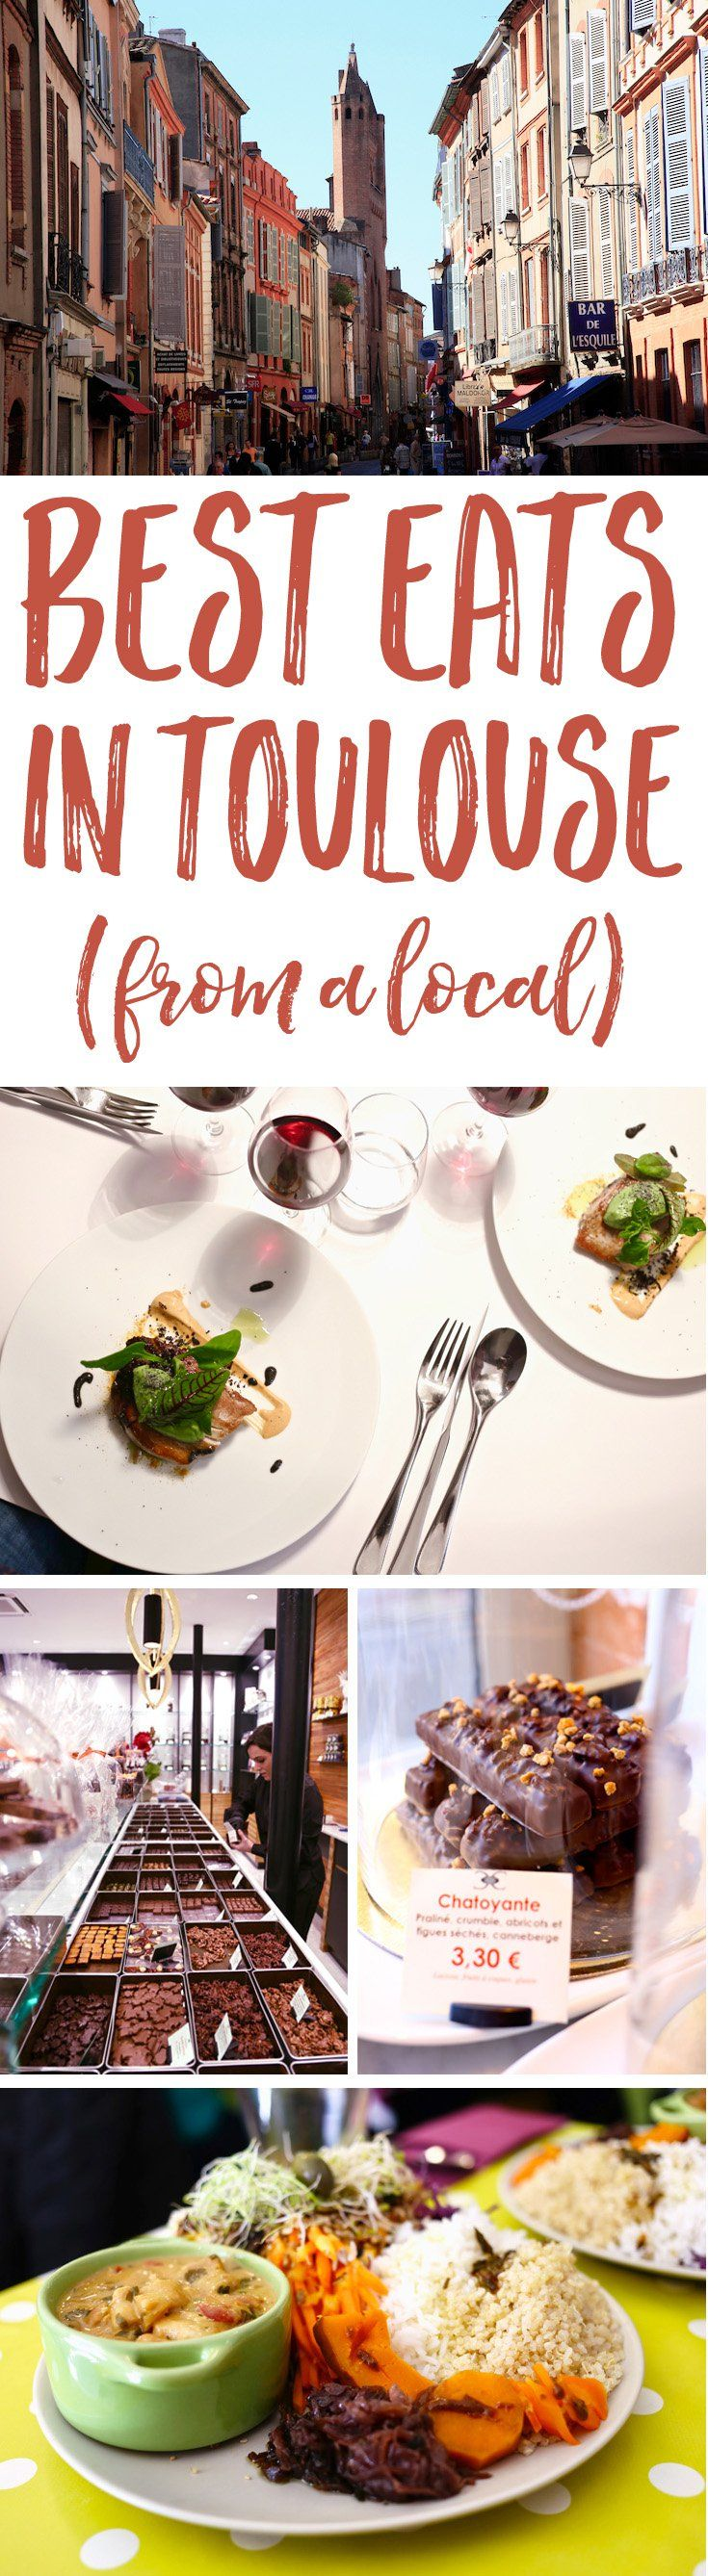 Planning a gourmand trip to Toulouse? Let our Toulousaine expert guide you through her favorite places in La Ville Rose.